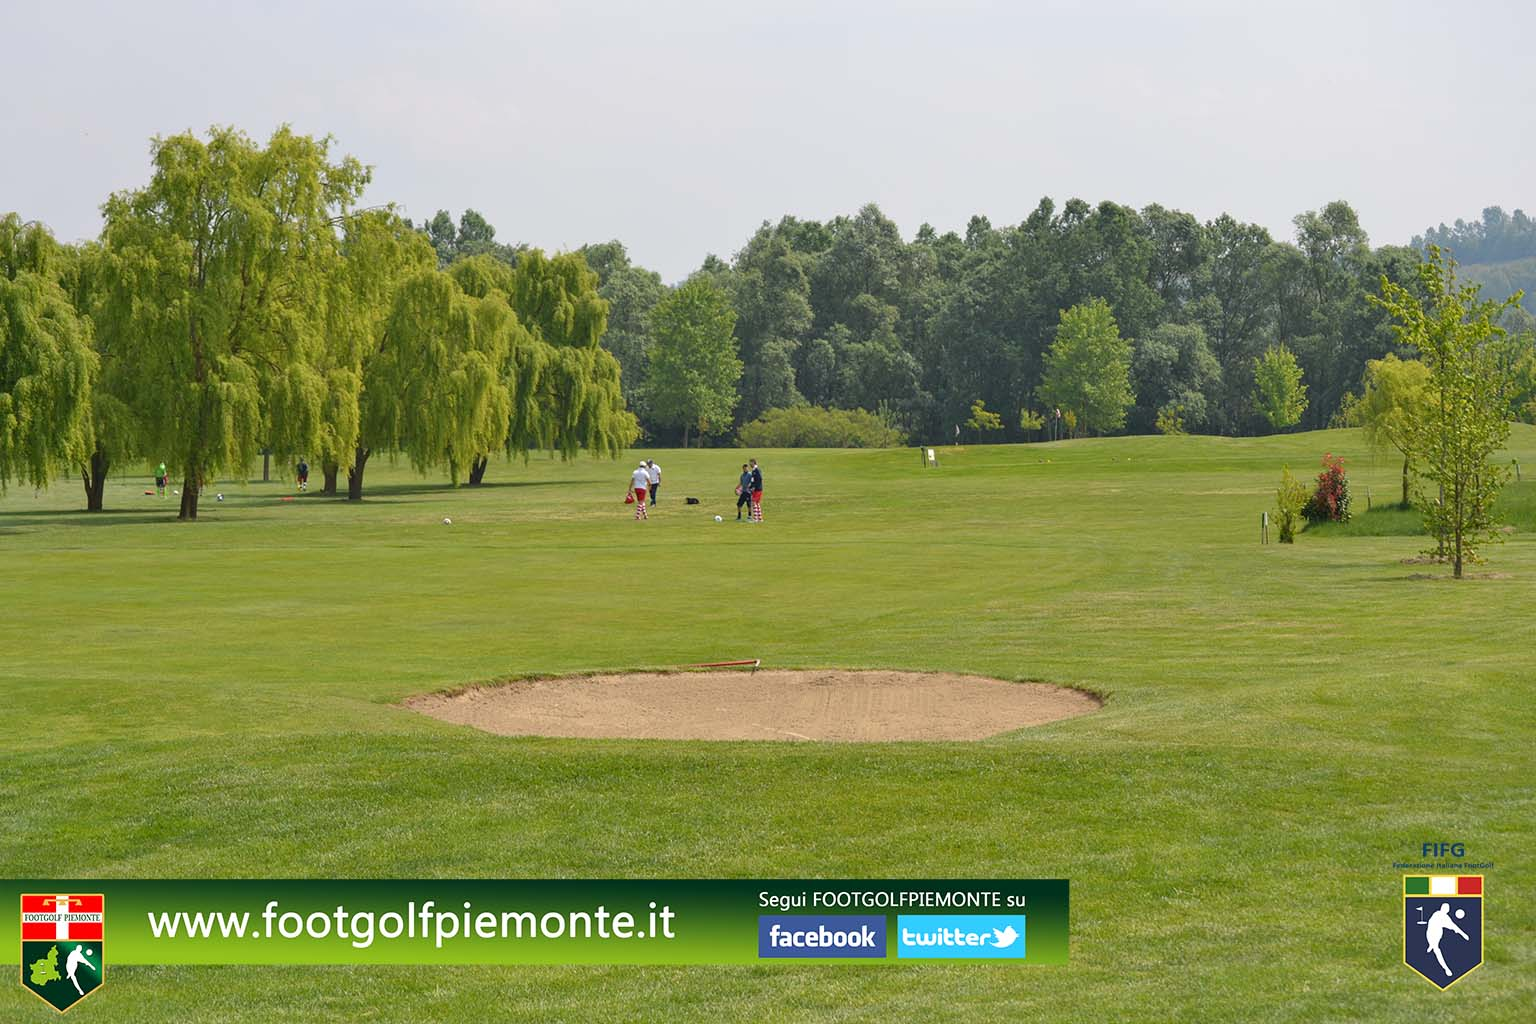 FOTO 9 Regions' Cup Footgolf Piemonte 2016 Golf Città di Asti (At) 30apr16-51